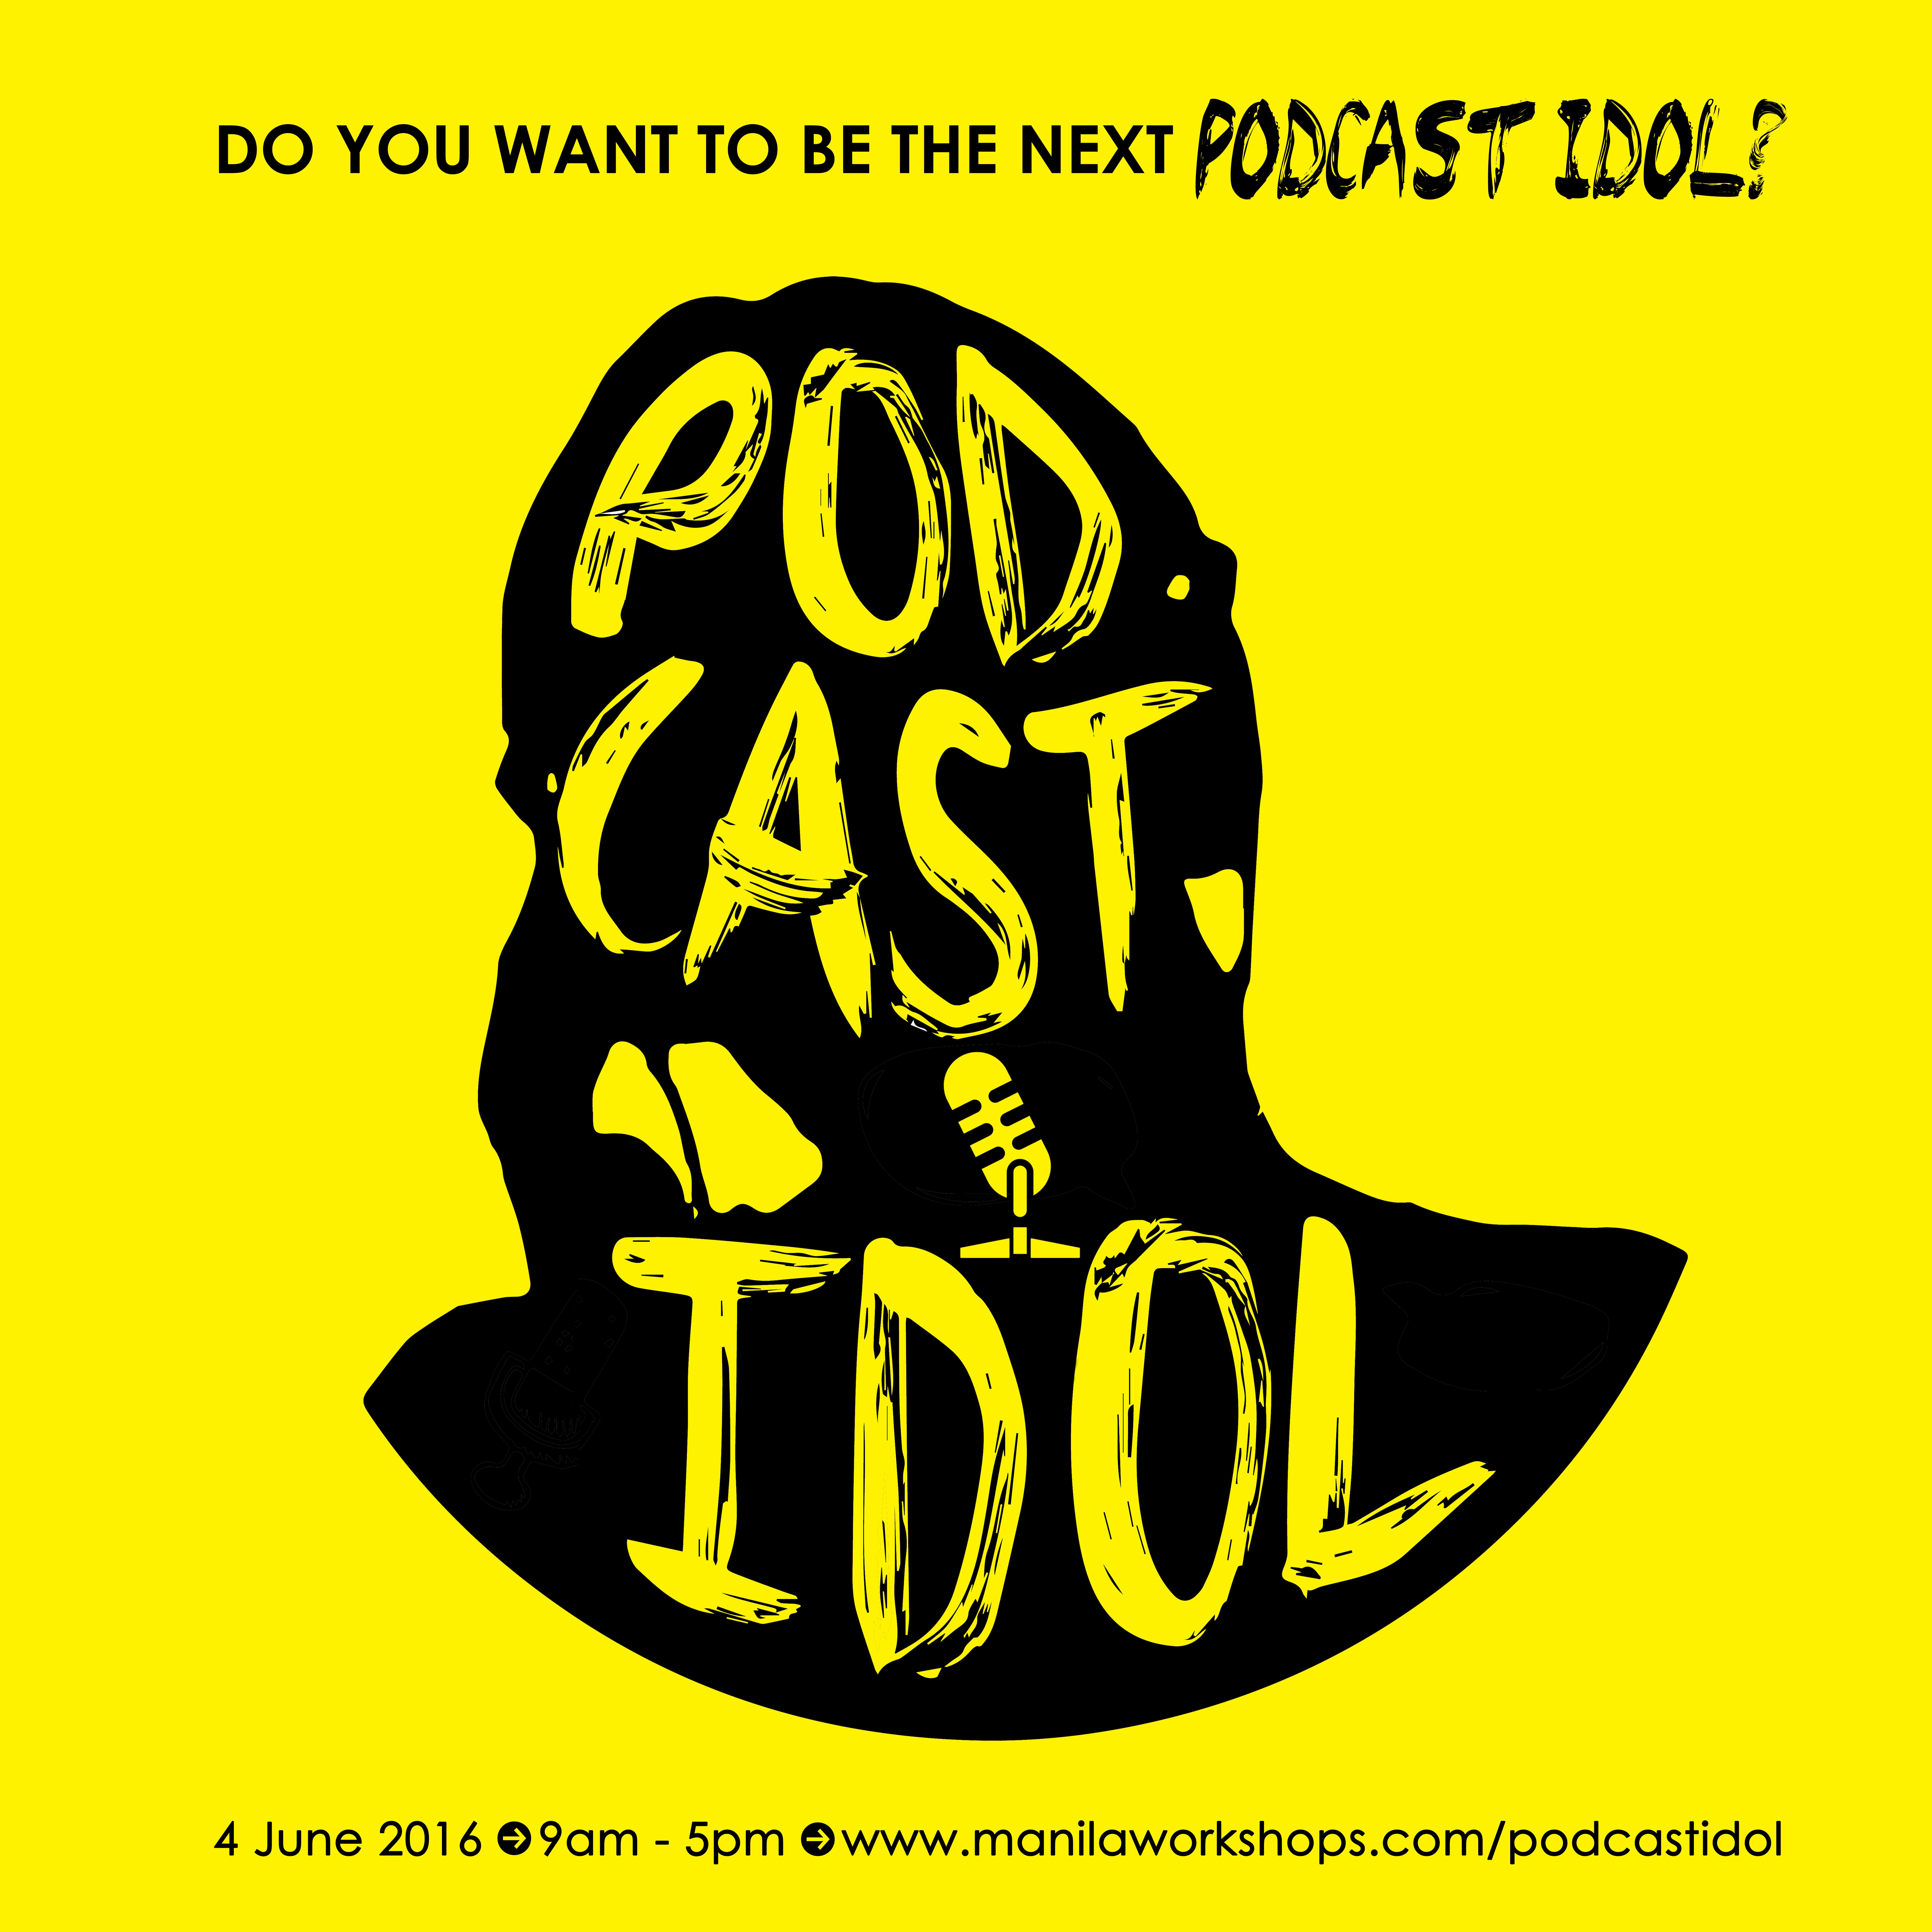 Learn How to Podcast: Join the Podcast Idol Workshop on June 4